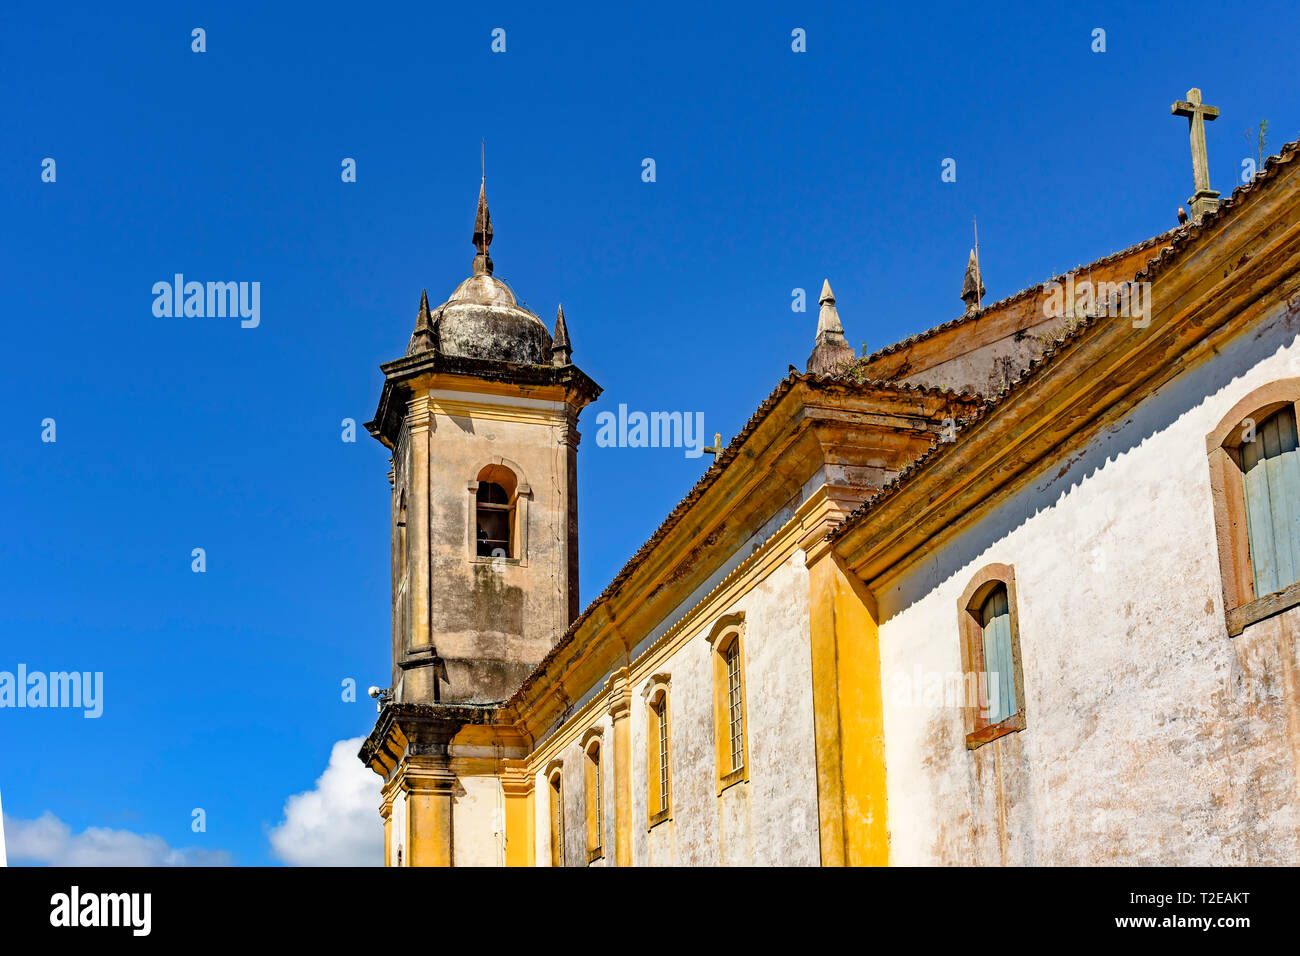 Old catholic bell church tower and facade of the 18th century located in the center of the famous and historical city of Ouro Preto in Minas Gerais - Stock Image